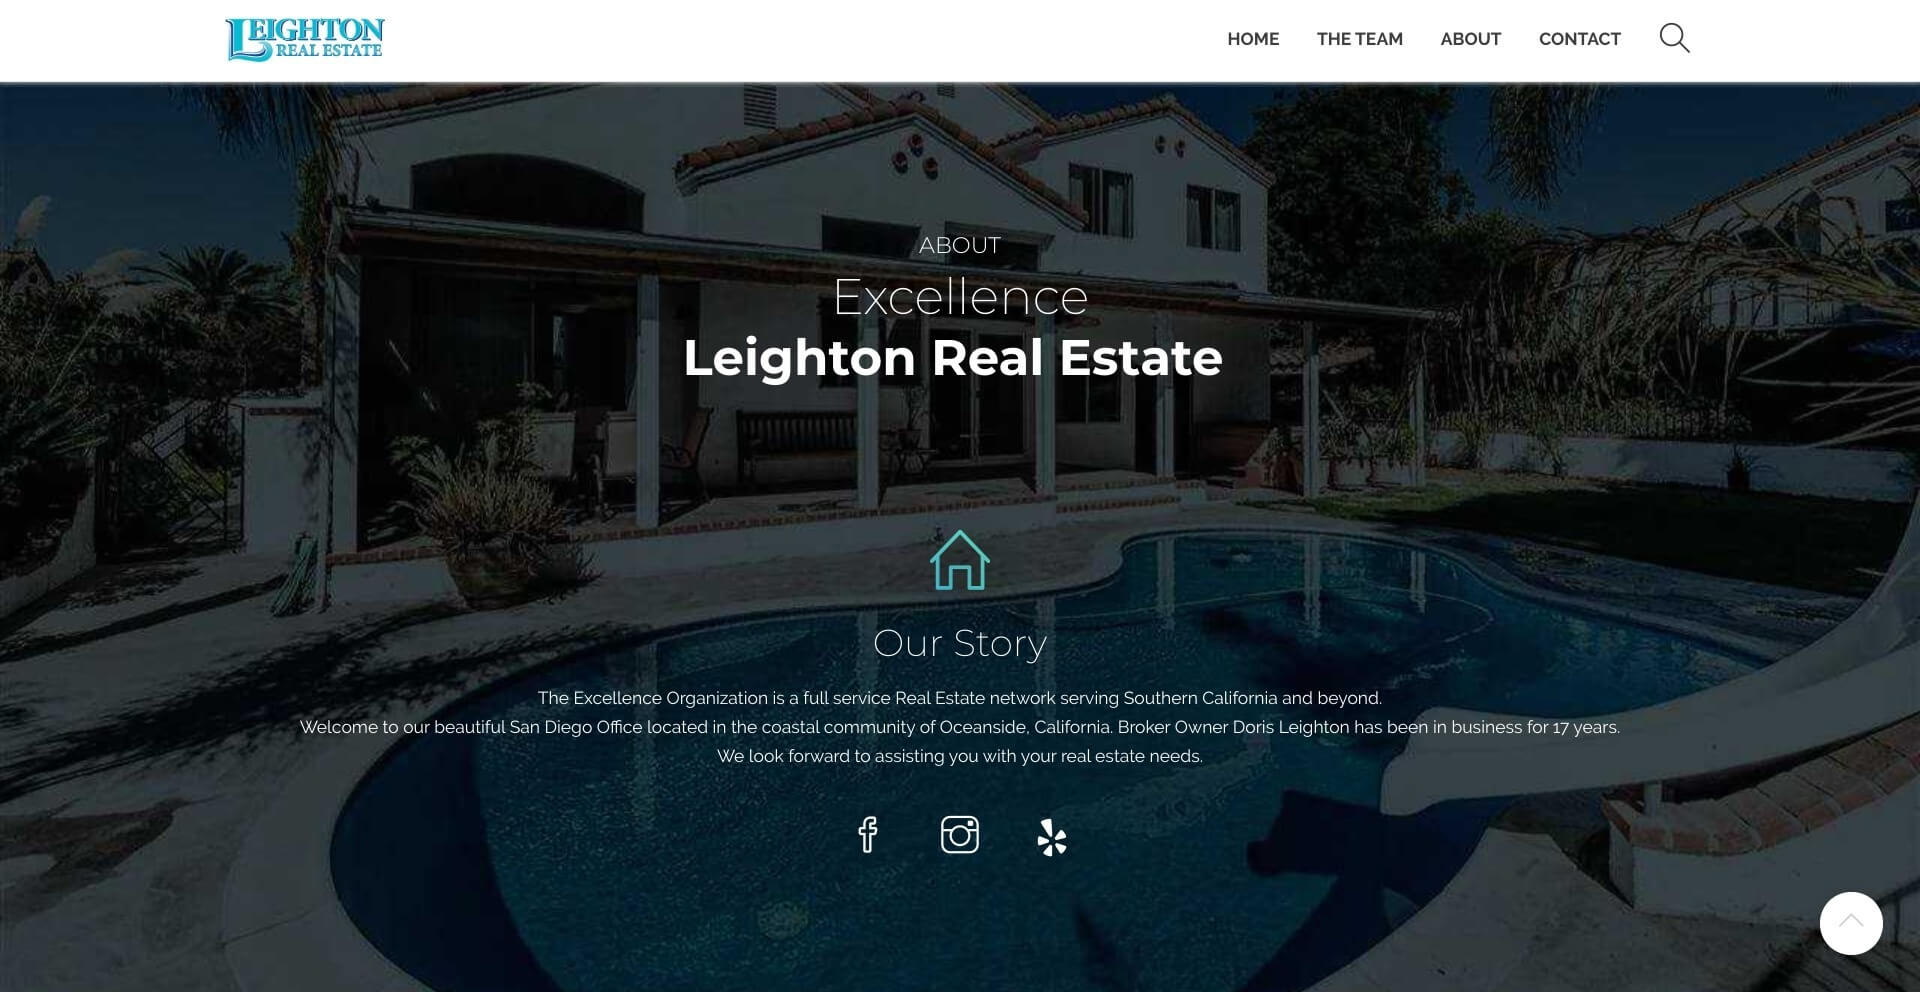 Excellence Leighton Real Estate